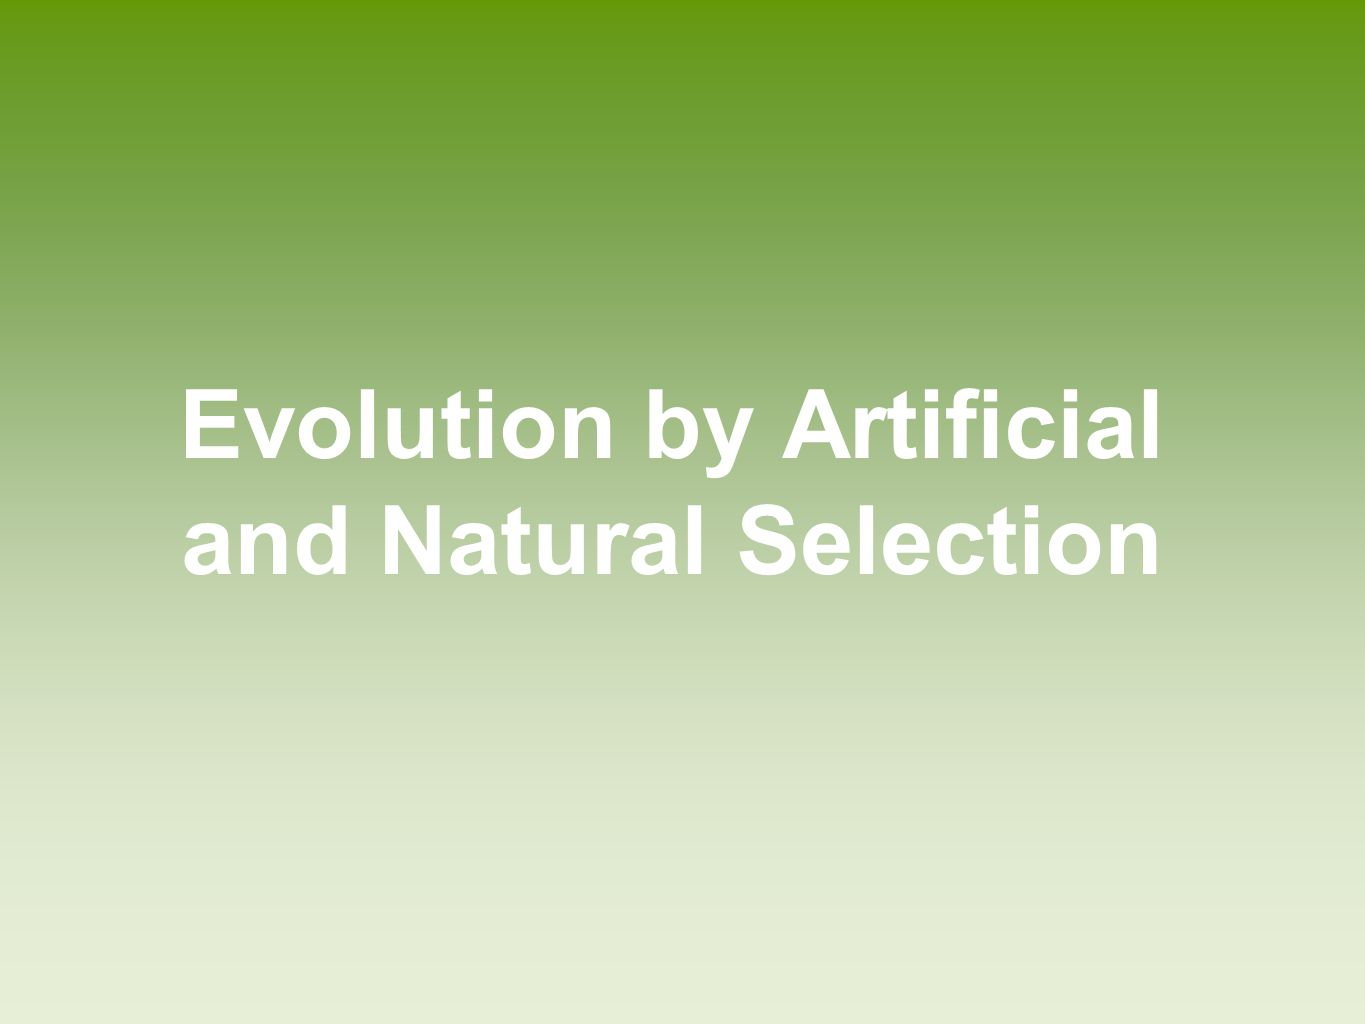 Evolution by Artificial and Natural Selection